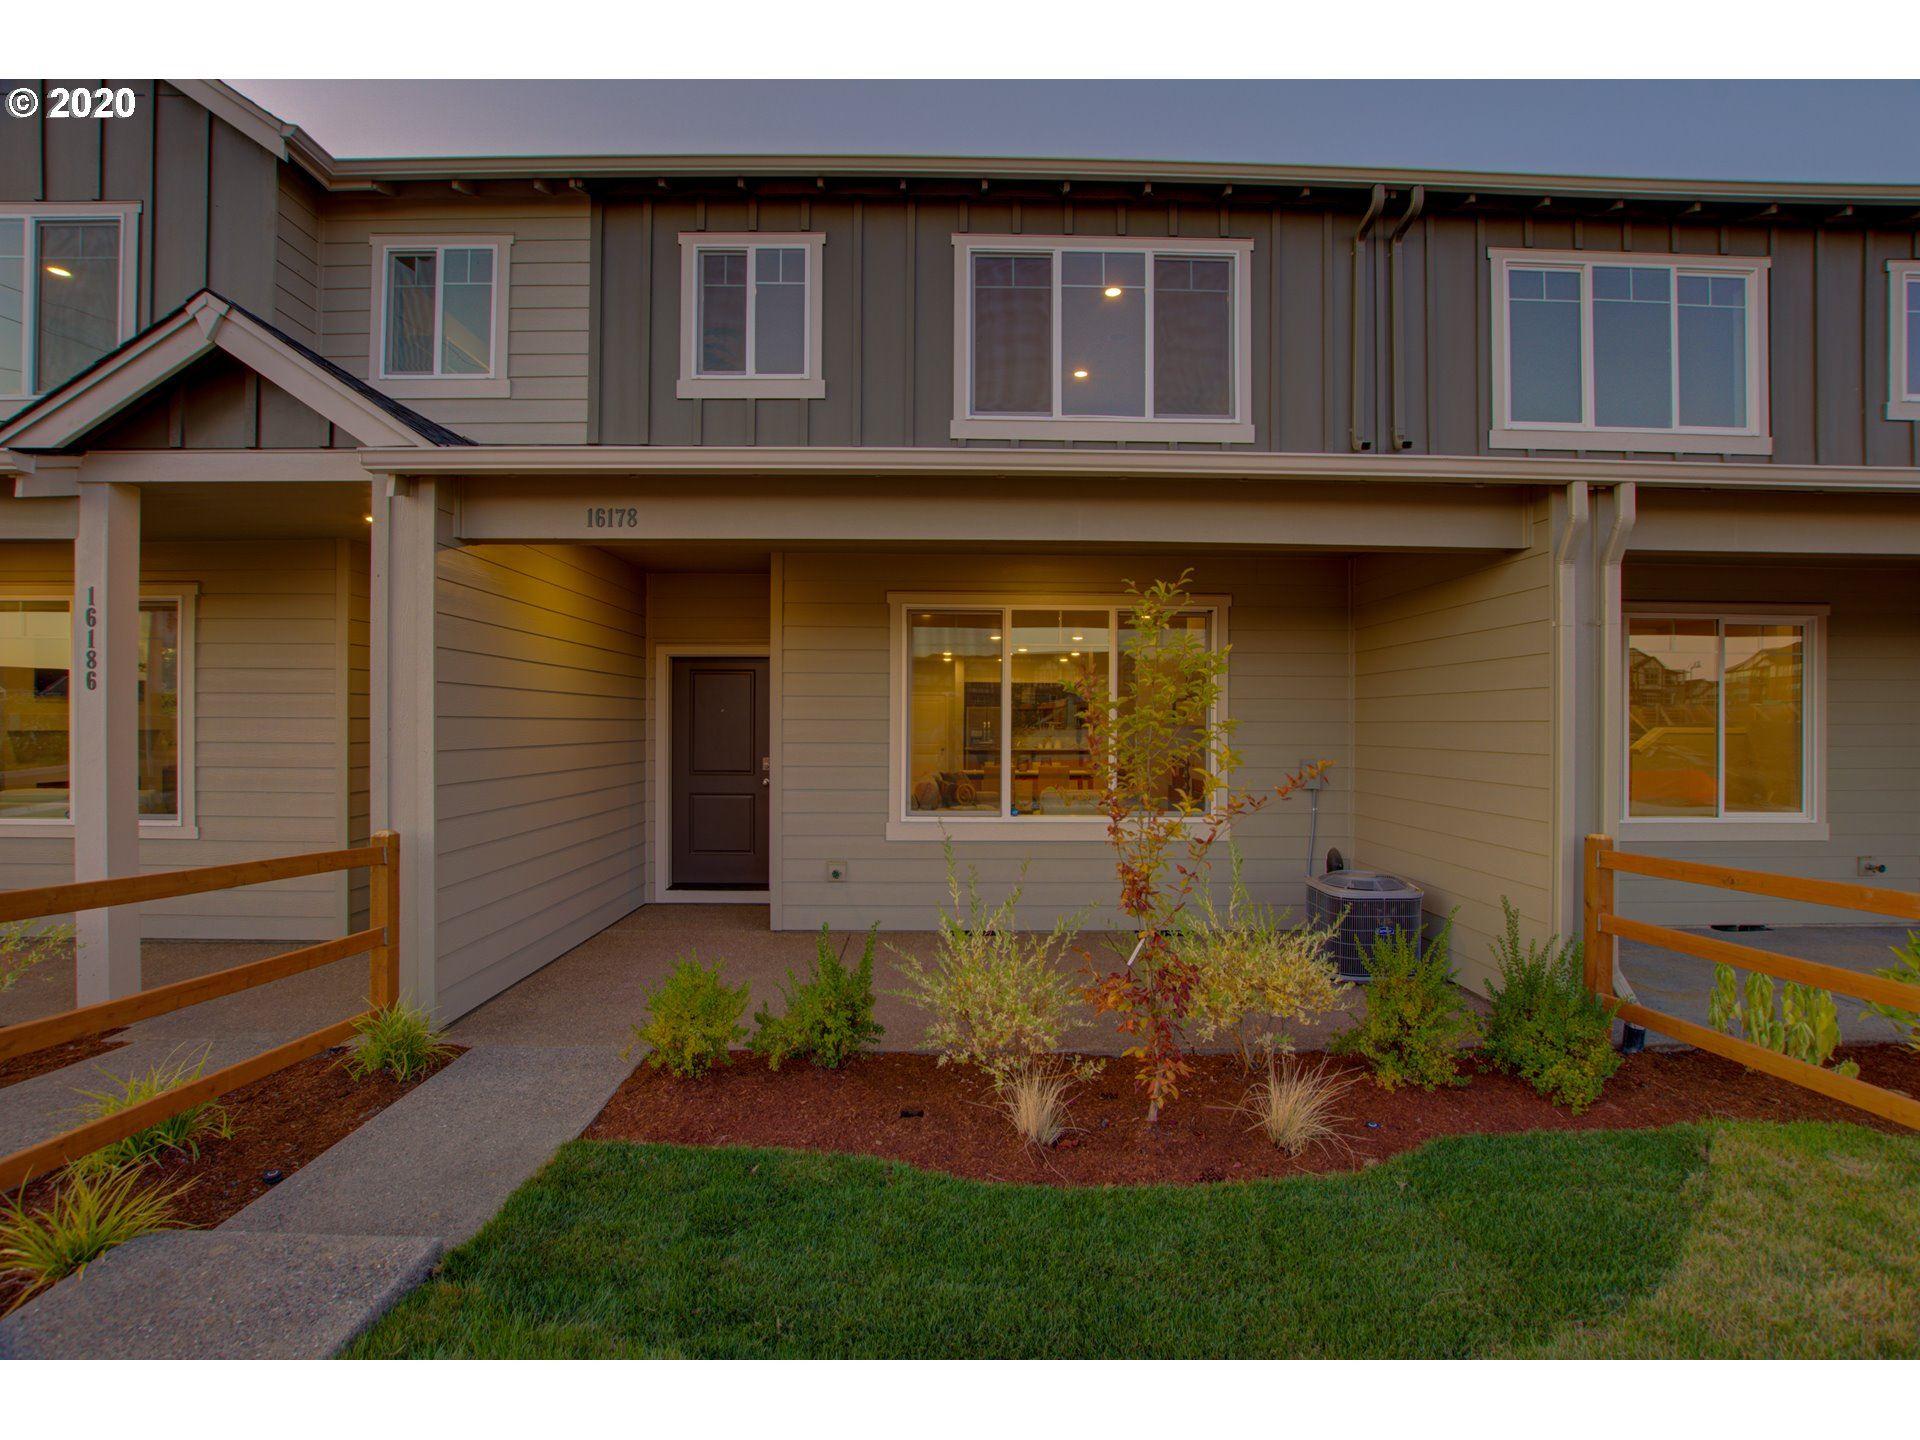 16173 NW RELIANCE LN #37, Portland, OR 97229 - MLS#: 20164841